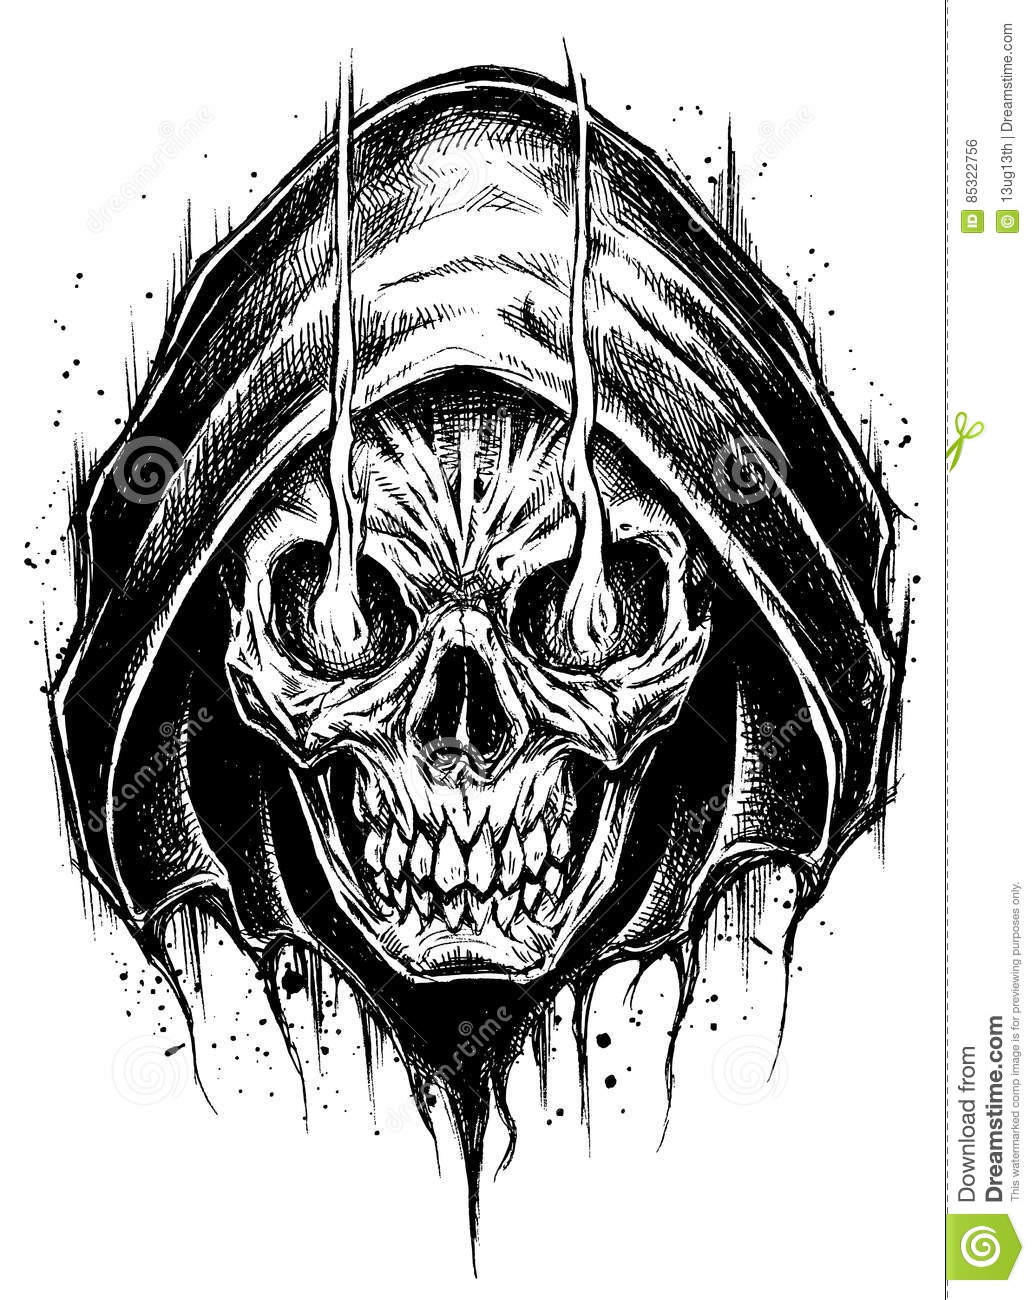 Drawing Lines Using Svg : Black and white drawings of grim reaper pictures to pin on